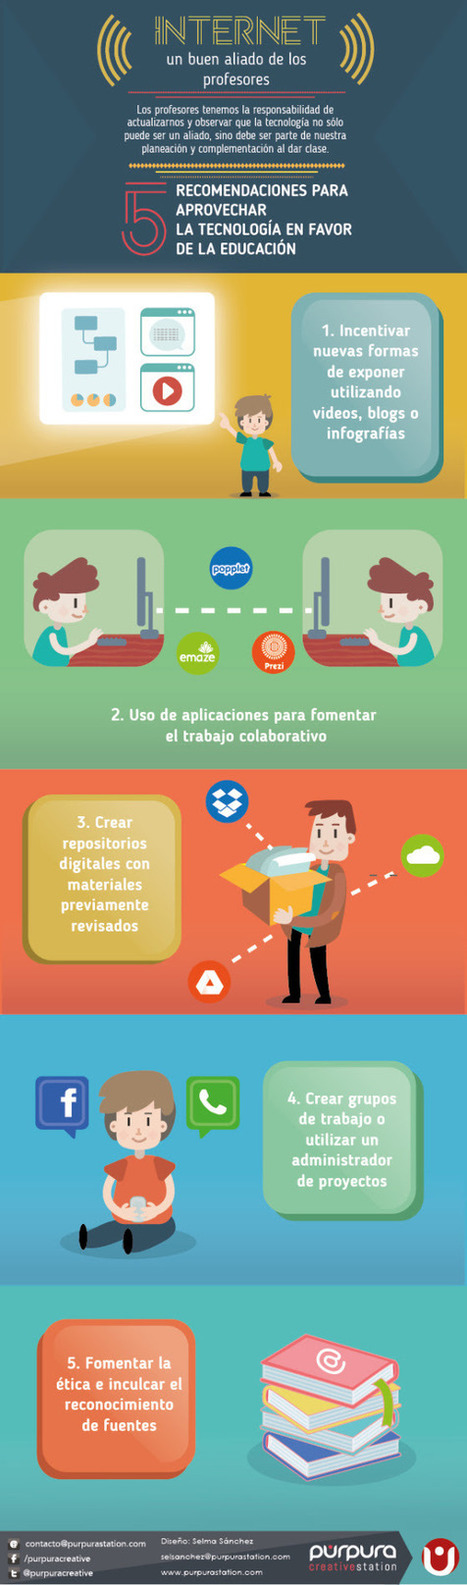 5 recomendaciones para usar Internet en Educación | Código Tic | Scoop.it